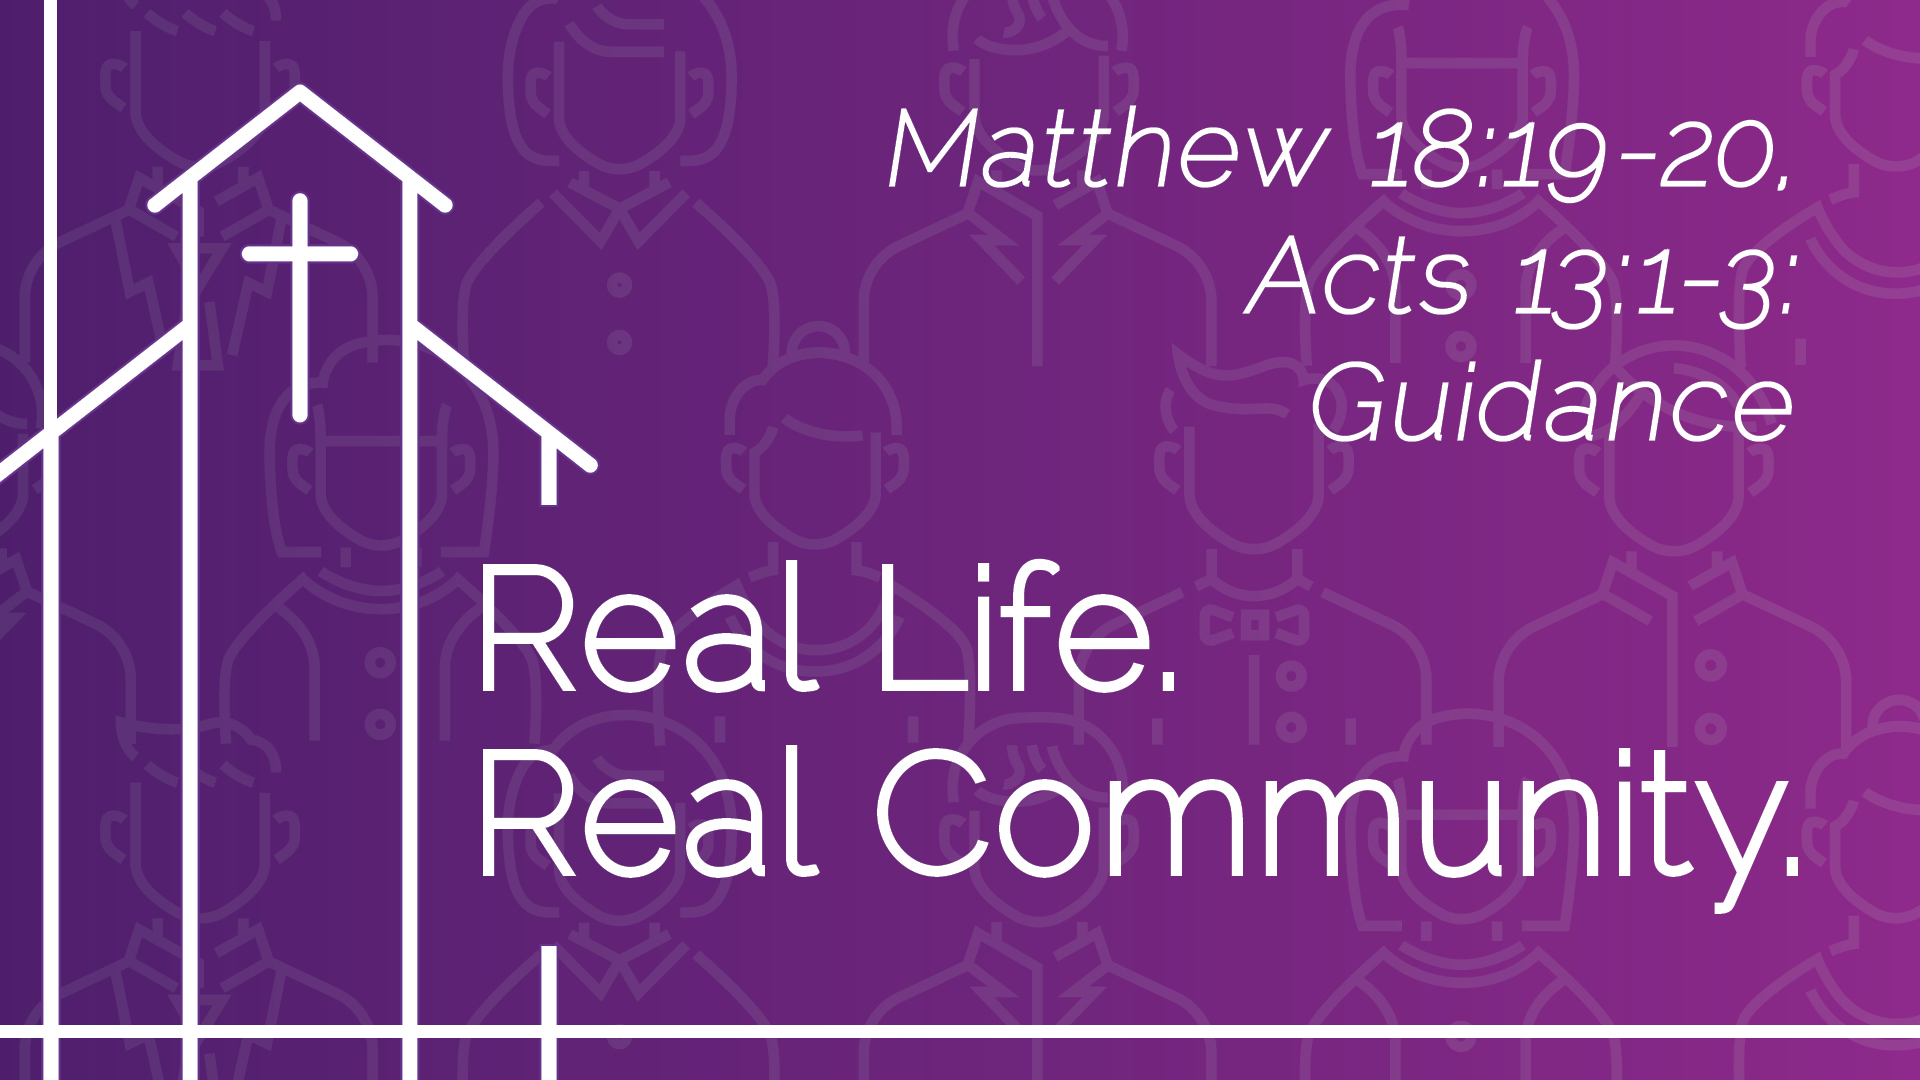 Real Community MAR14